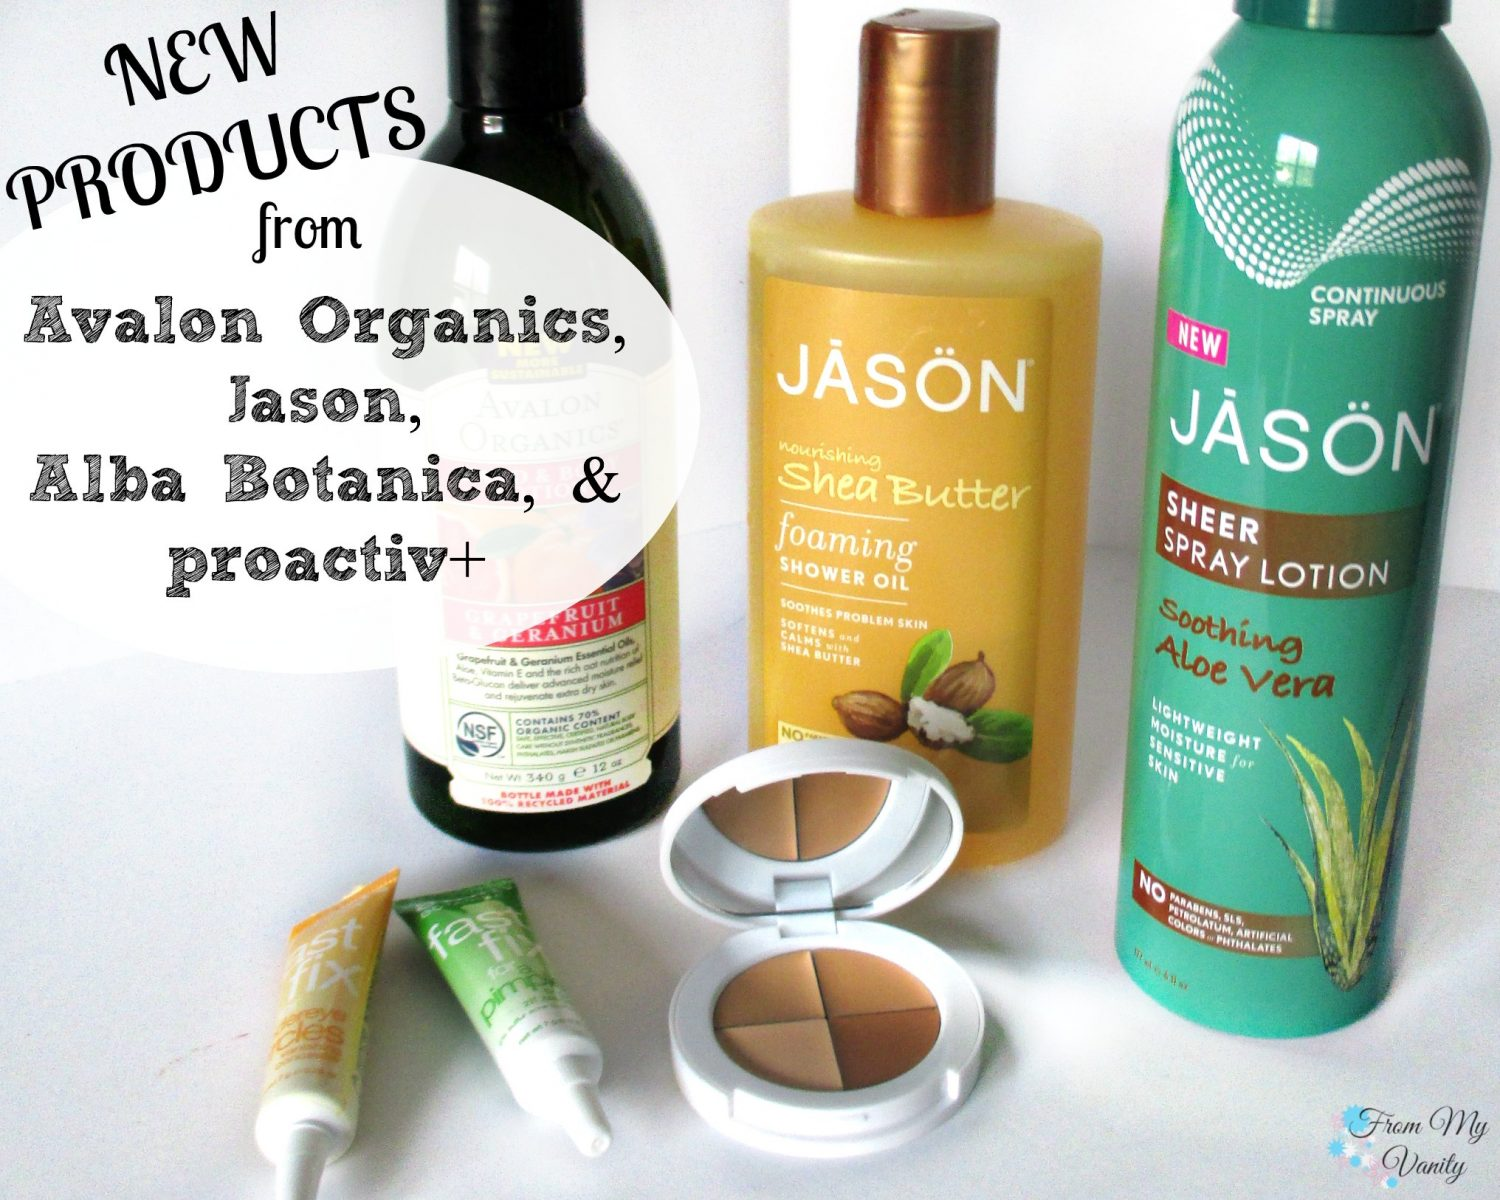 New Products from Avalon Organics, Jason, Alba Botanica, & Proactiv+ // @LadyKaty92 FromMyVanity.com